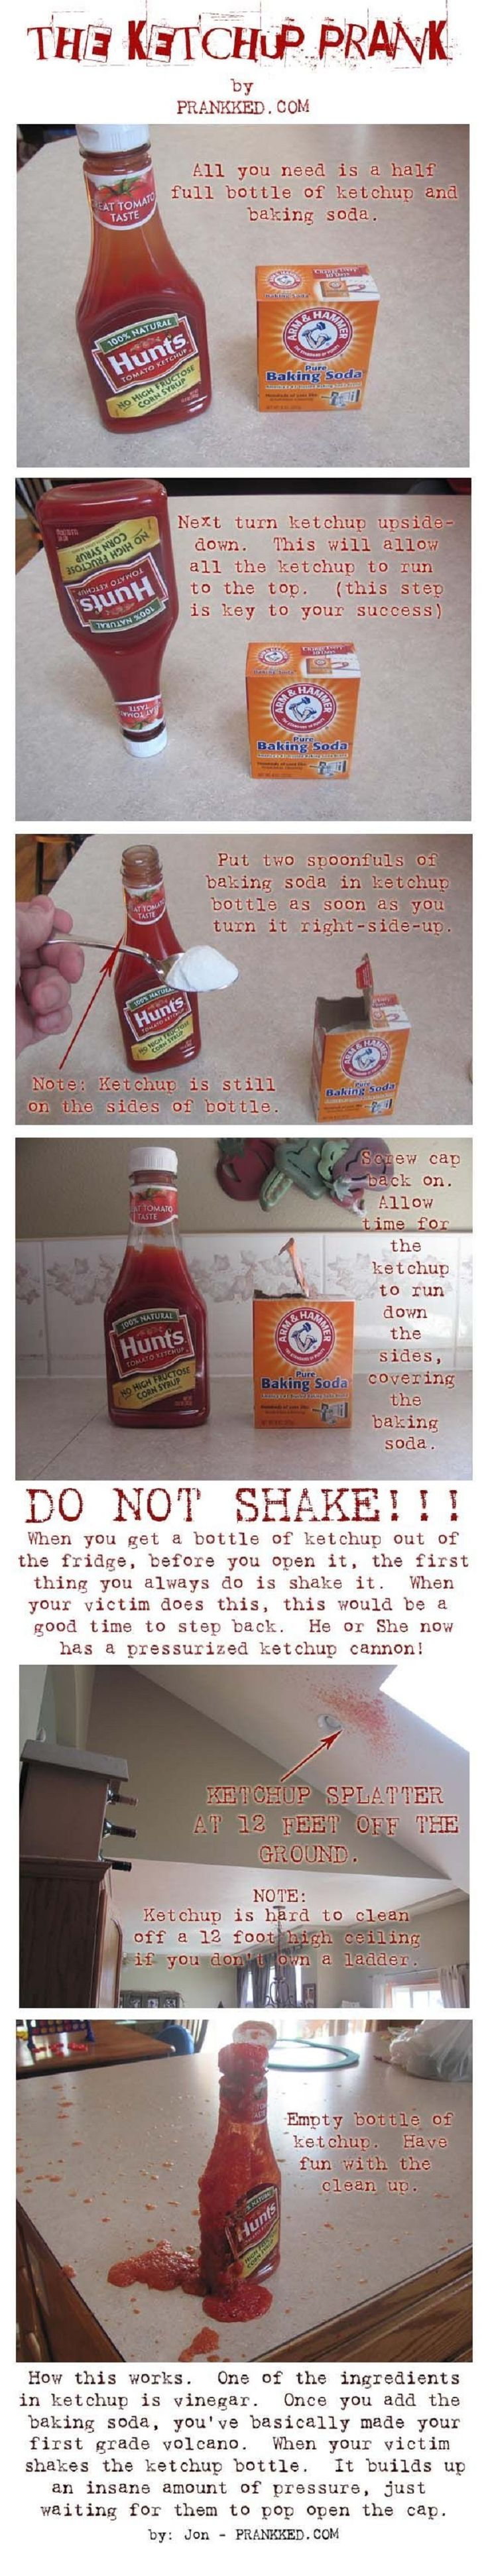 The Ketchup Prank - 20 Best April Fool's Day Pranks to Fool Friends and Family | GleamItUp